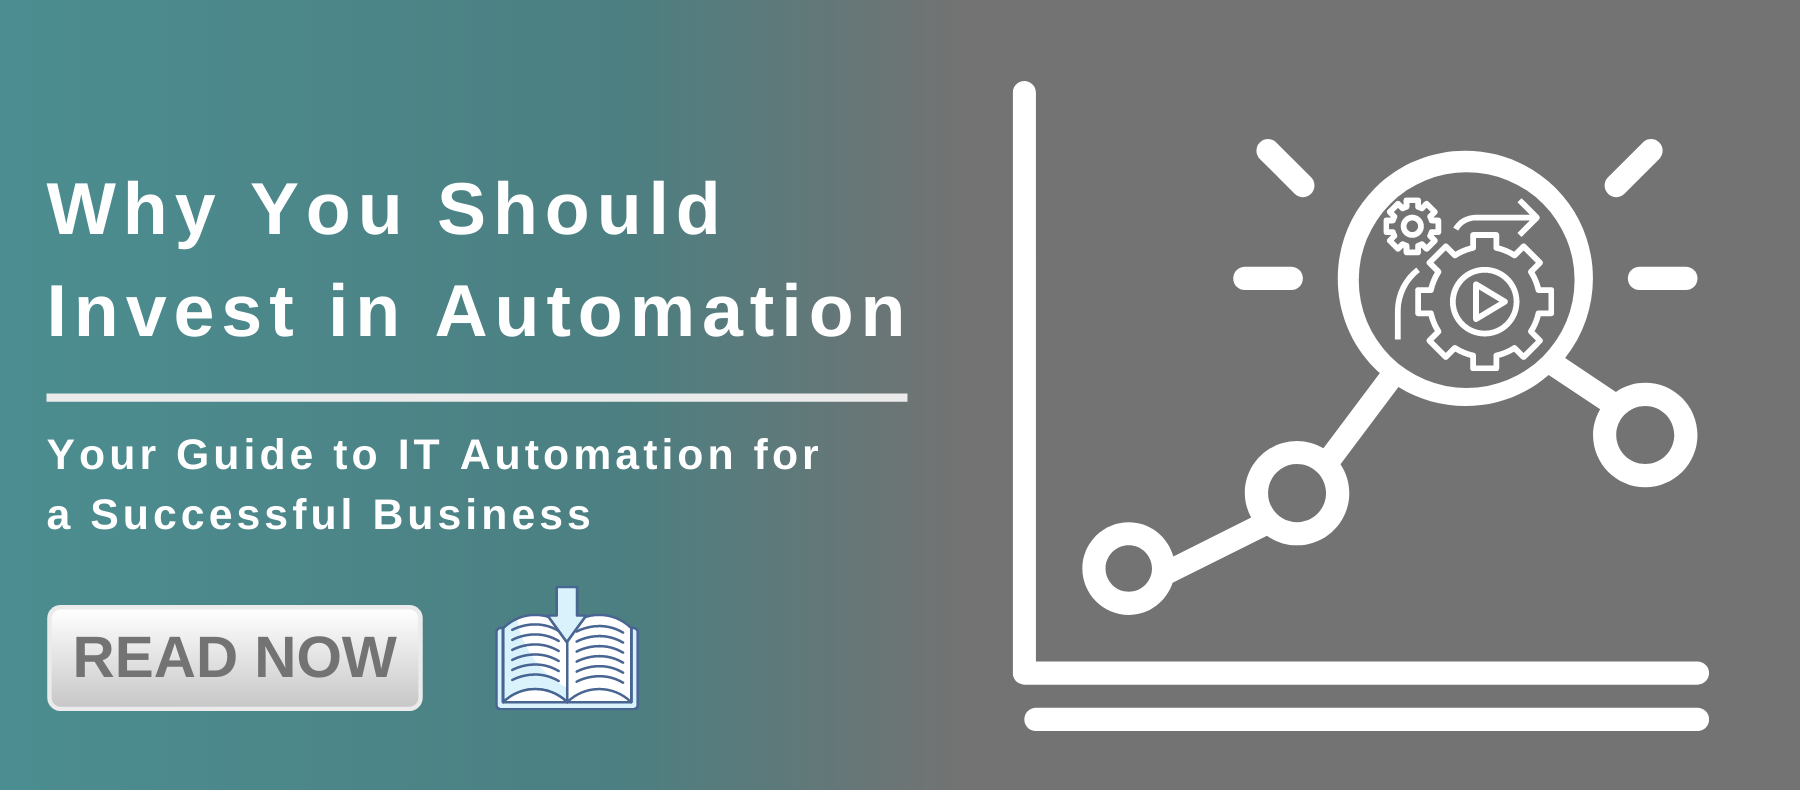 Why you should invest in automation